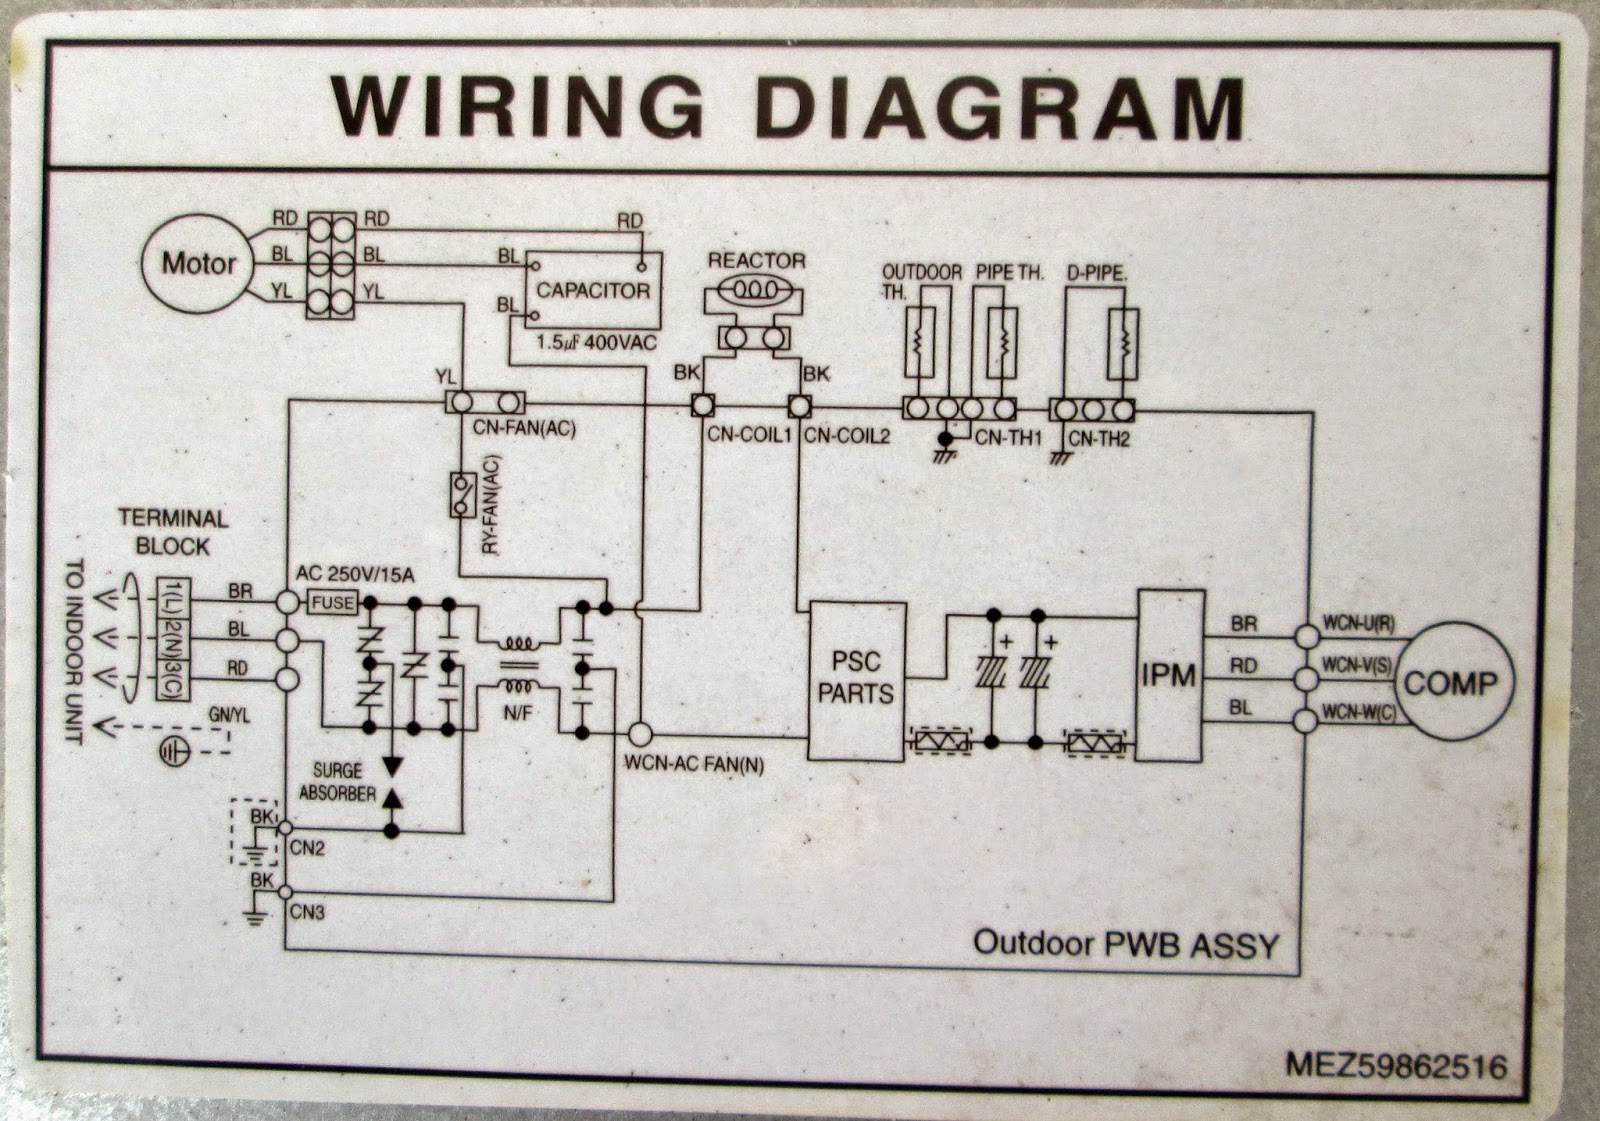 wiring diagram of split ac download wiring diagram wiring diagram of split ac download [ 1600 x 1121 Pixel ]